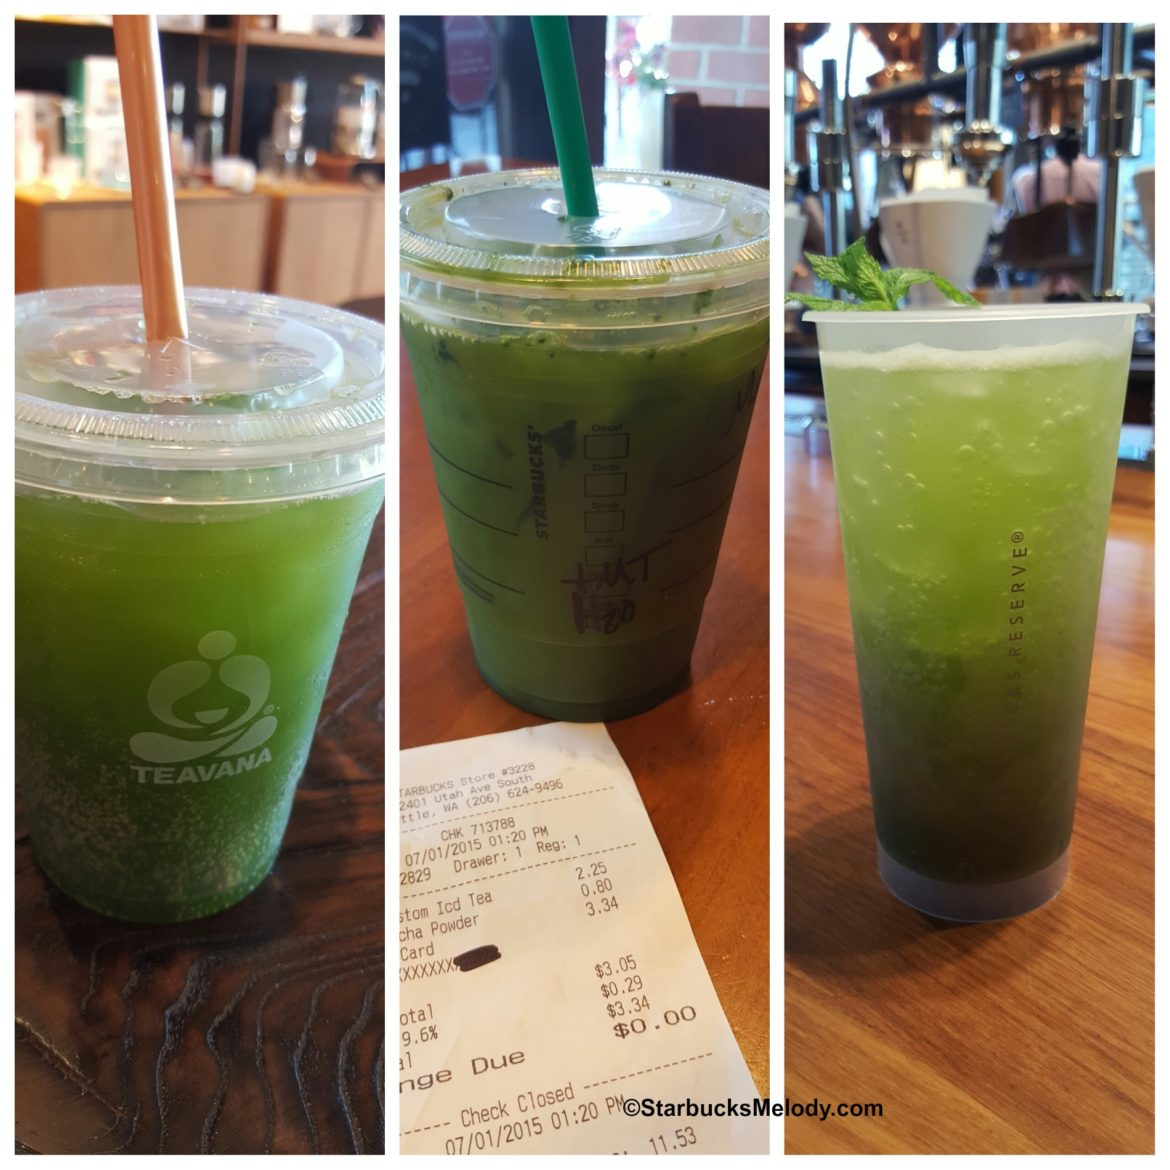 Iced Matcha Beverages: Starbucks, Teavana, and the Roastery